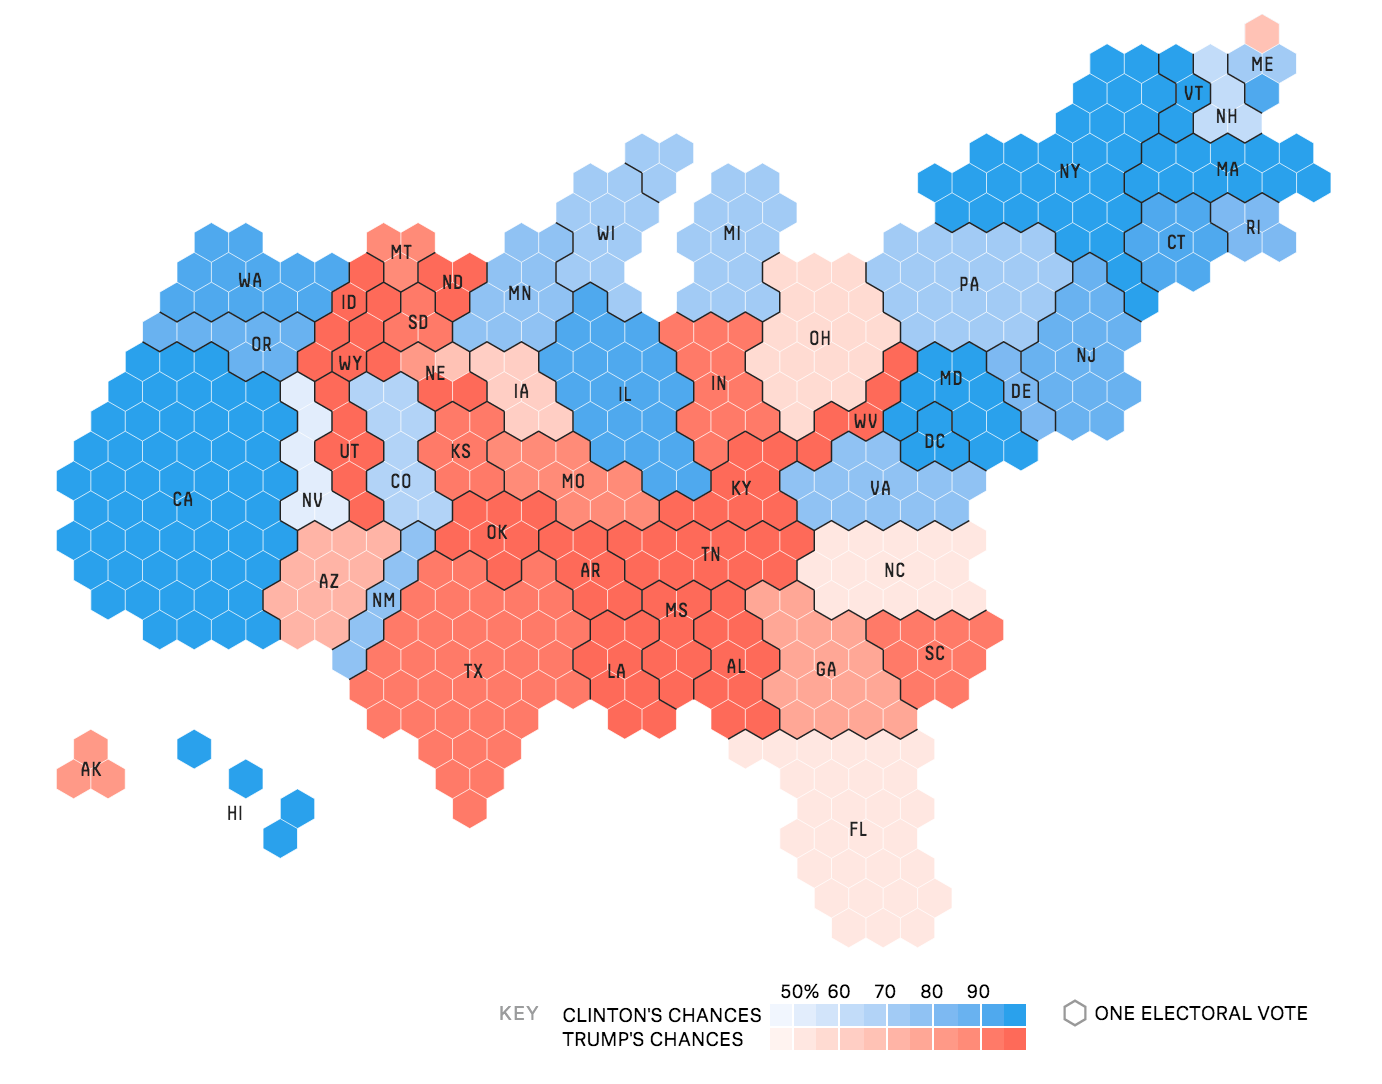 Tilegrams Make your own cartogram hexmaps with our new tool